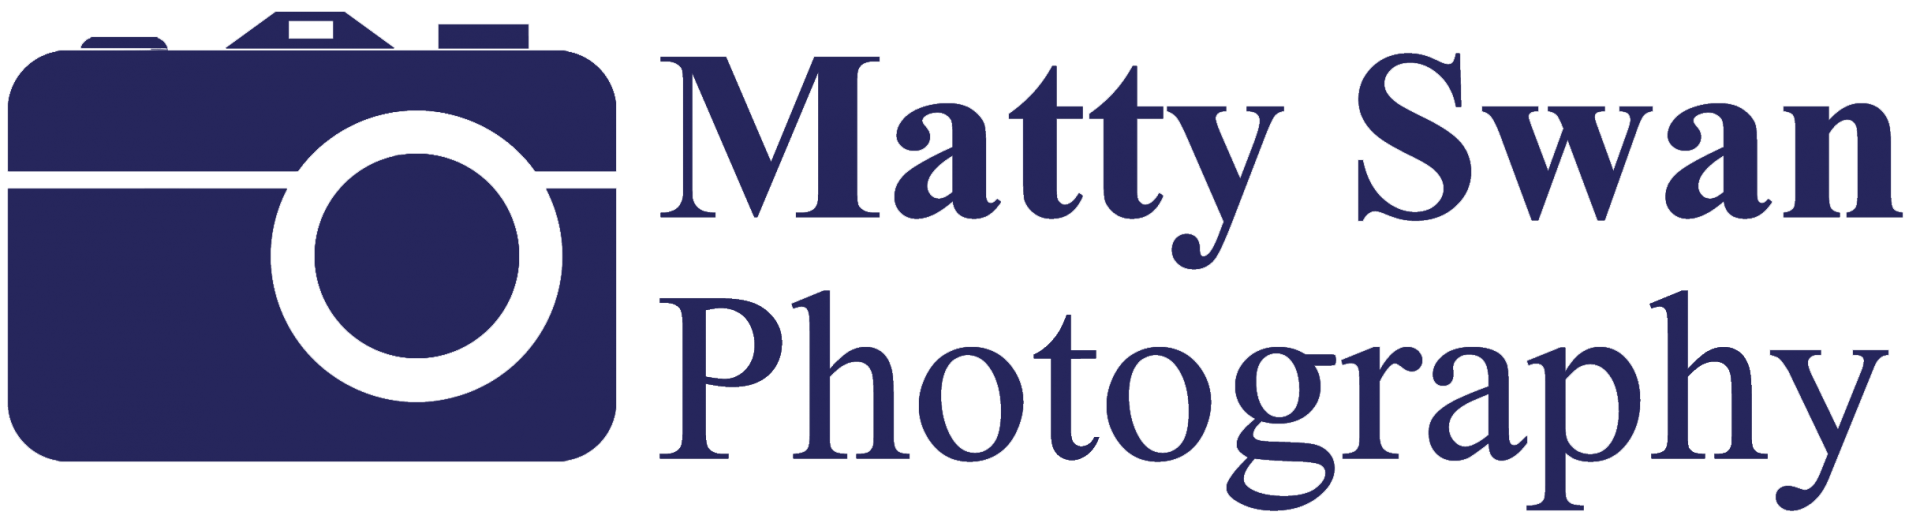 Matty Swan Photography logo